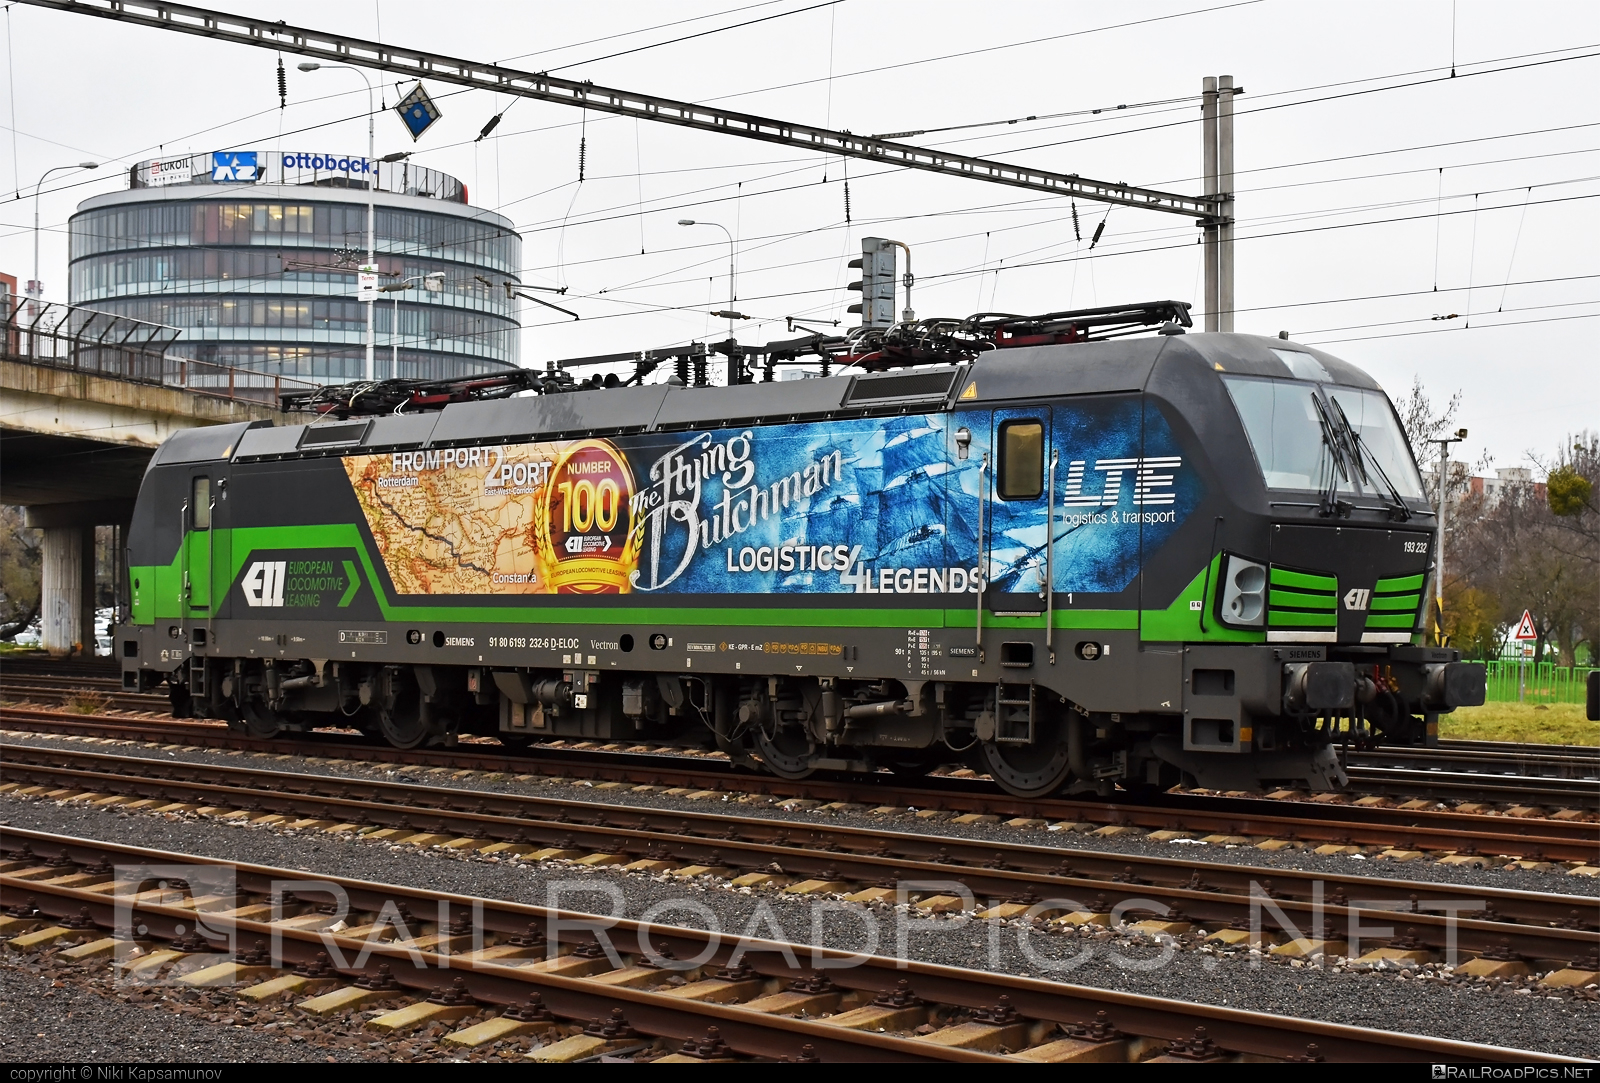 Siemens Vectron MS - 193 232 operated by LTE Logistik und Transport GmbH #ell #ellgermany #eloc #europeanlocomotiveleasing #lte #ltelogistikundtransport #ltelogistikundtransportgmbh #siemens #siemensvectron #siemensvectronms #vectron #vectronms